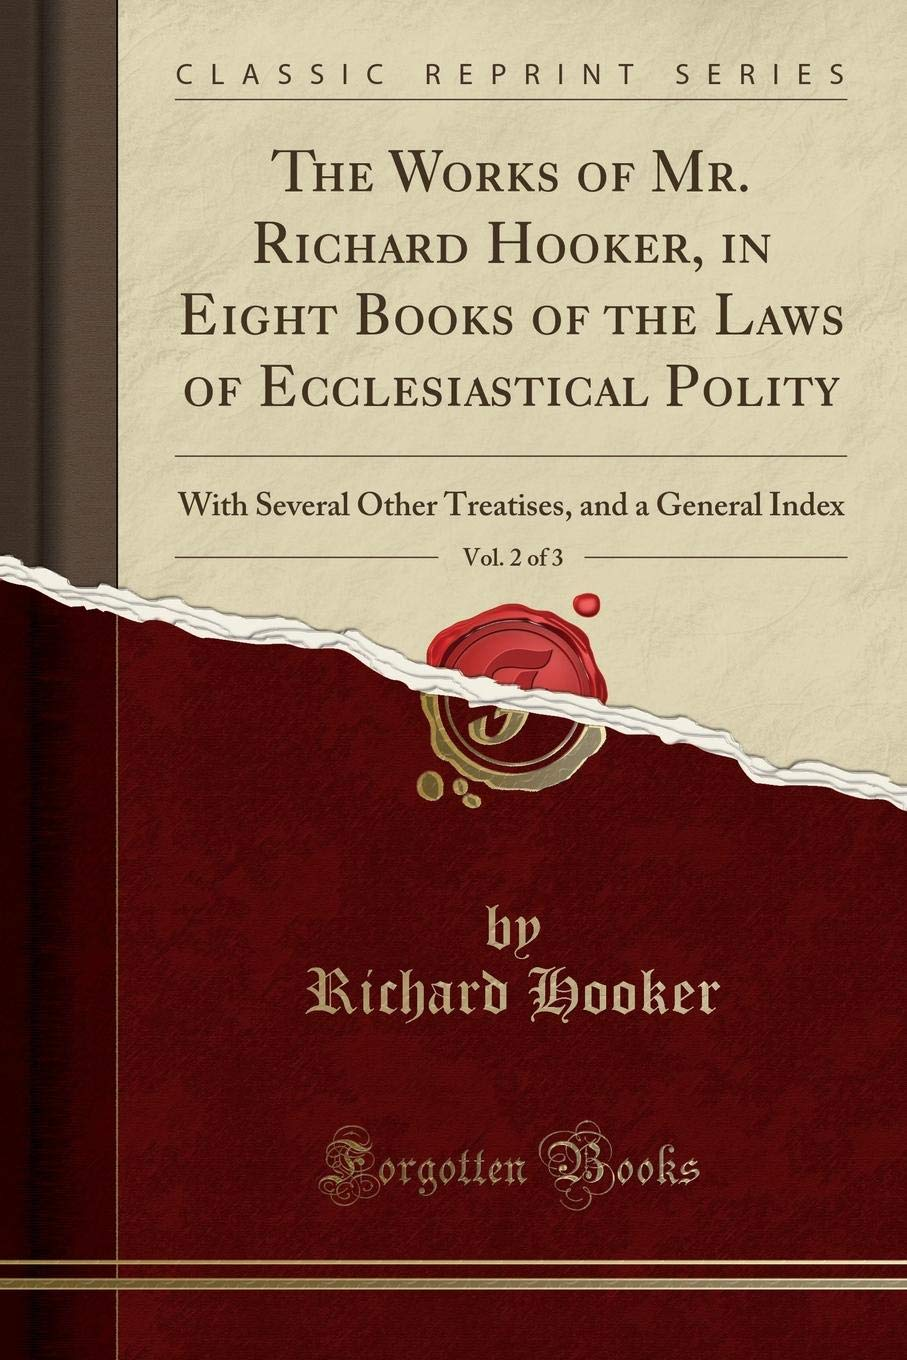 The Works of Mr. Richard Hooker, in Eight Books of the Laws of Ecclesiastical Polity, Vol. 2 of 3: With Several Other Treatises, and a General Index (Classic Reprint) PDF